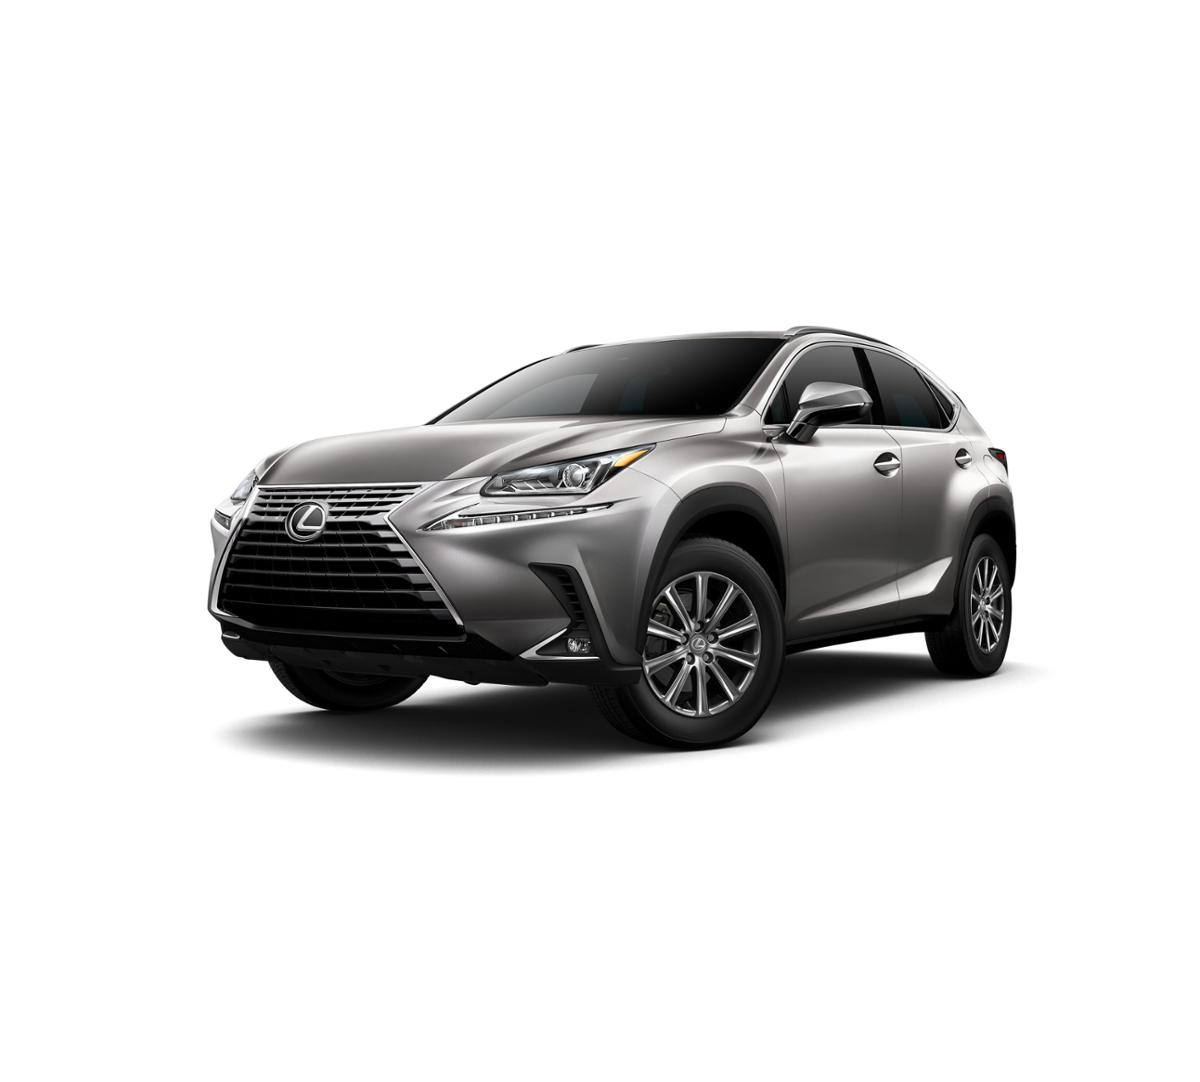 2019 Lexus NX Vehicle Photo in Dallas, TX 75209